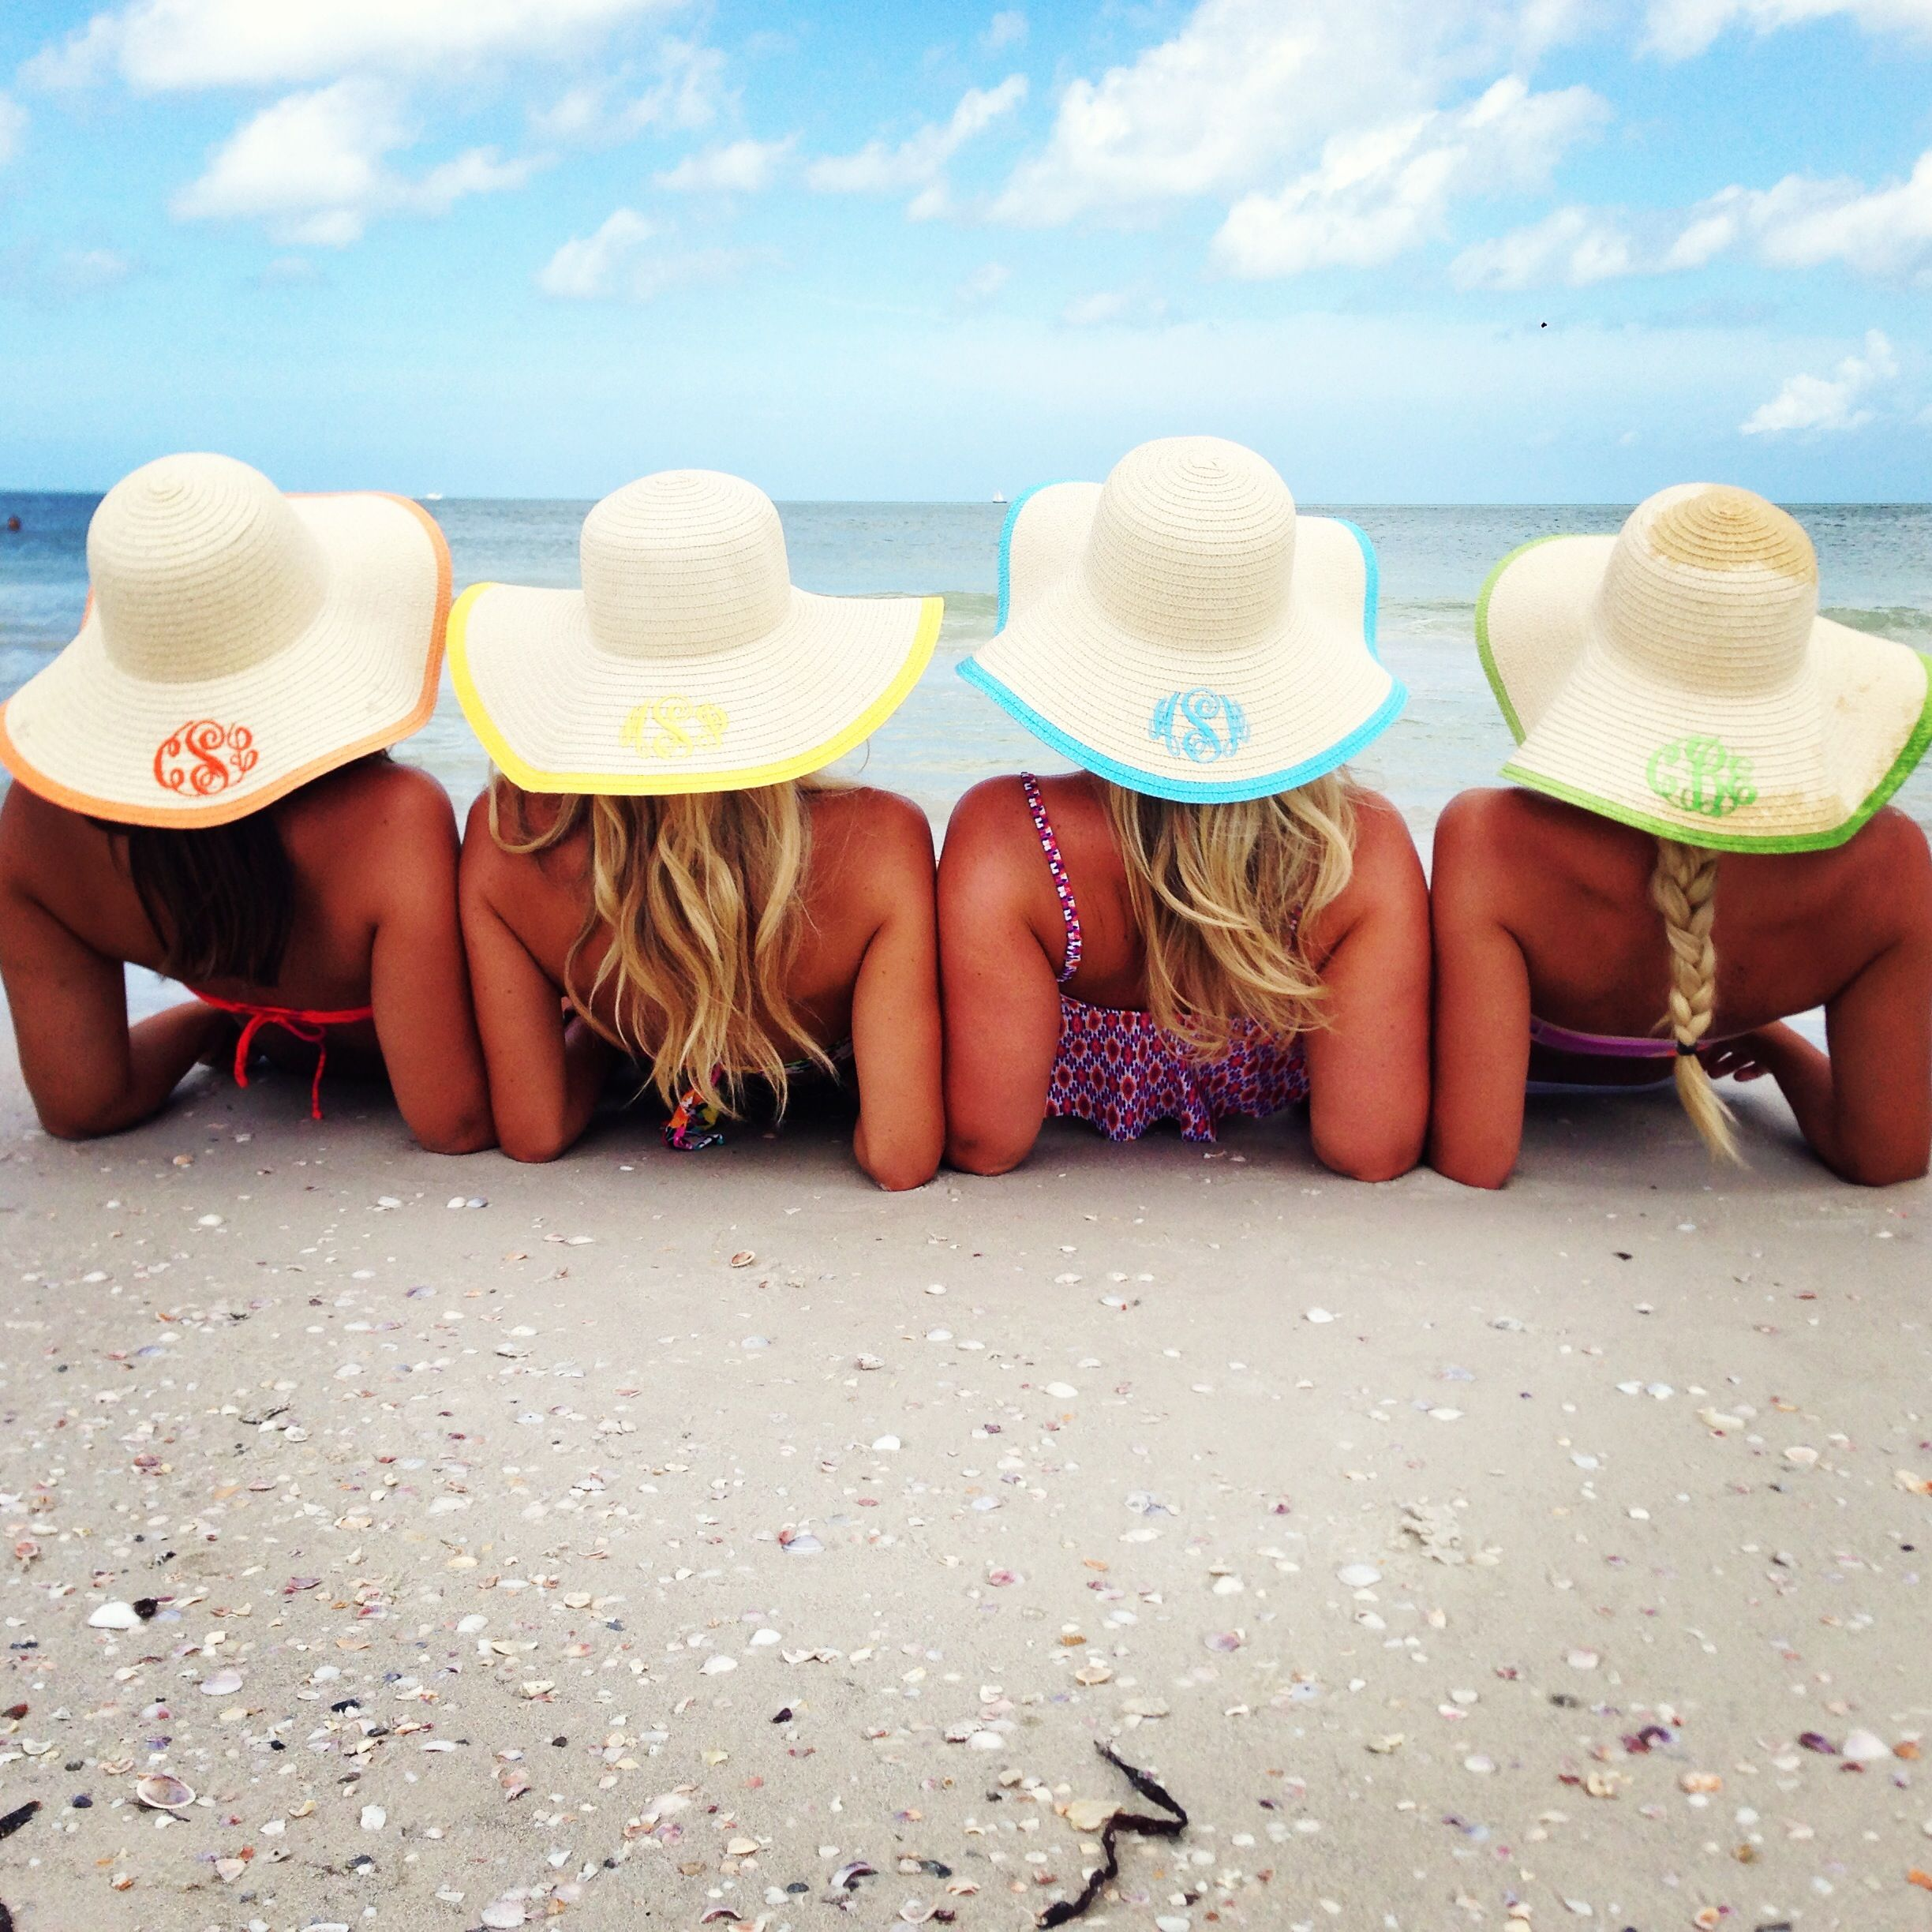 52 Best Images About Family Travel On Pinterest: Marleylilly Monogrammed Hats